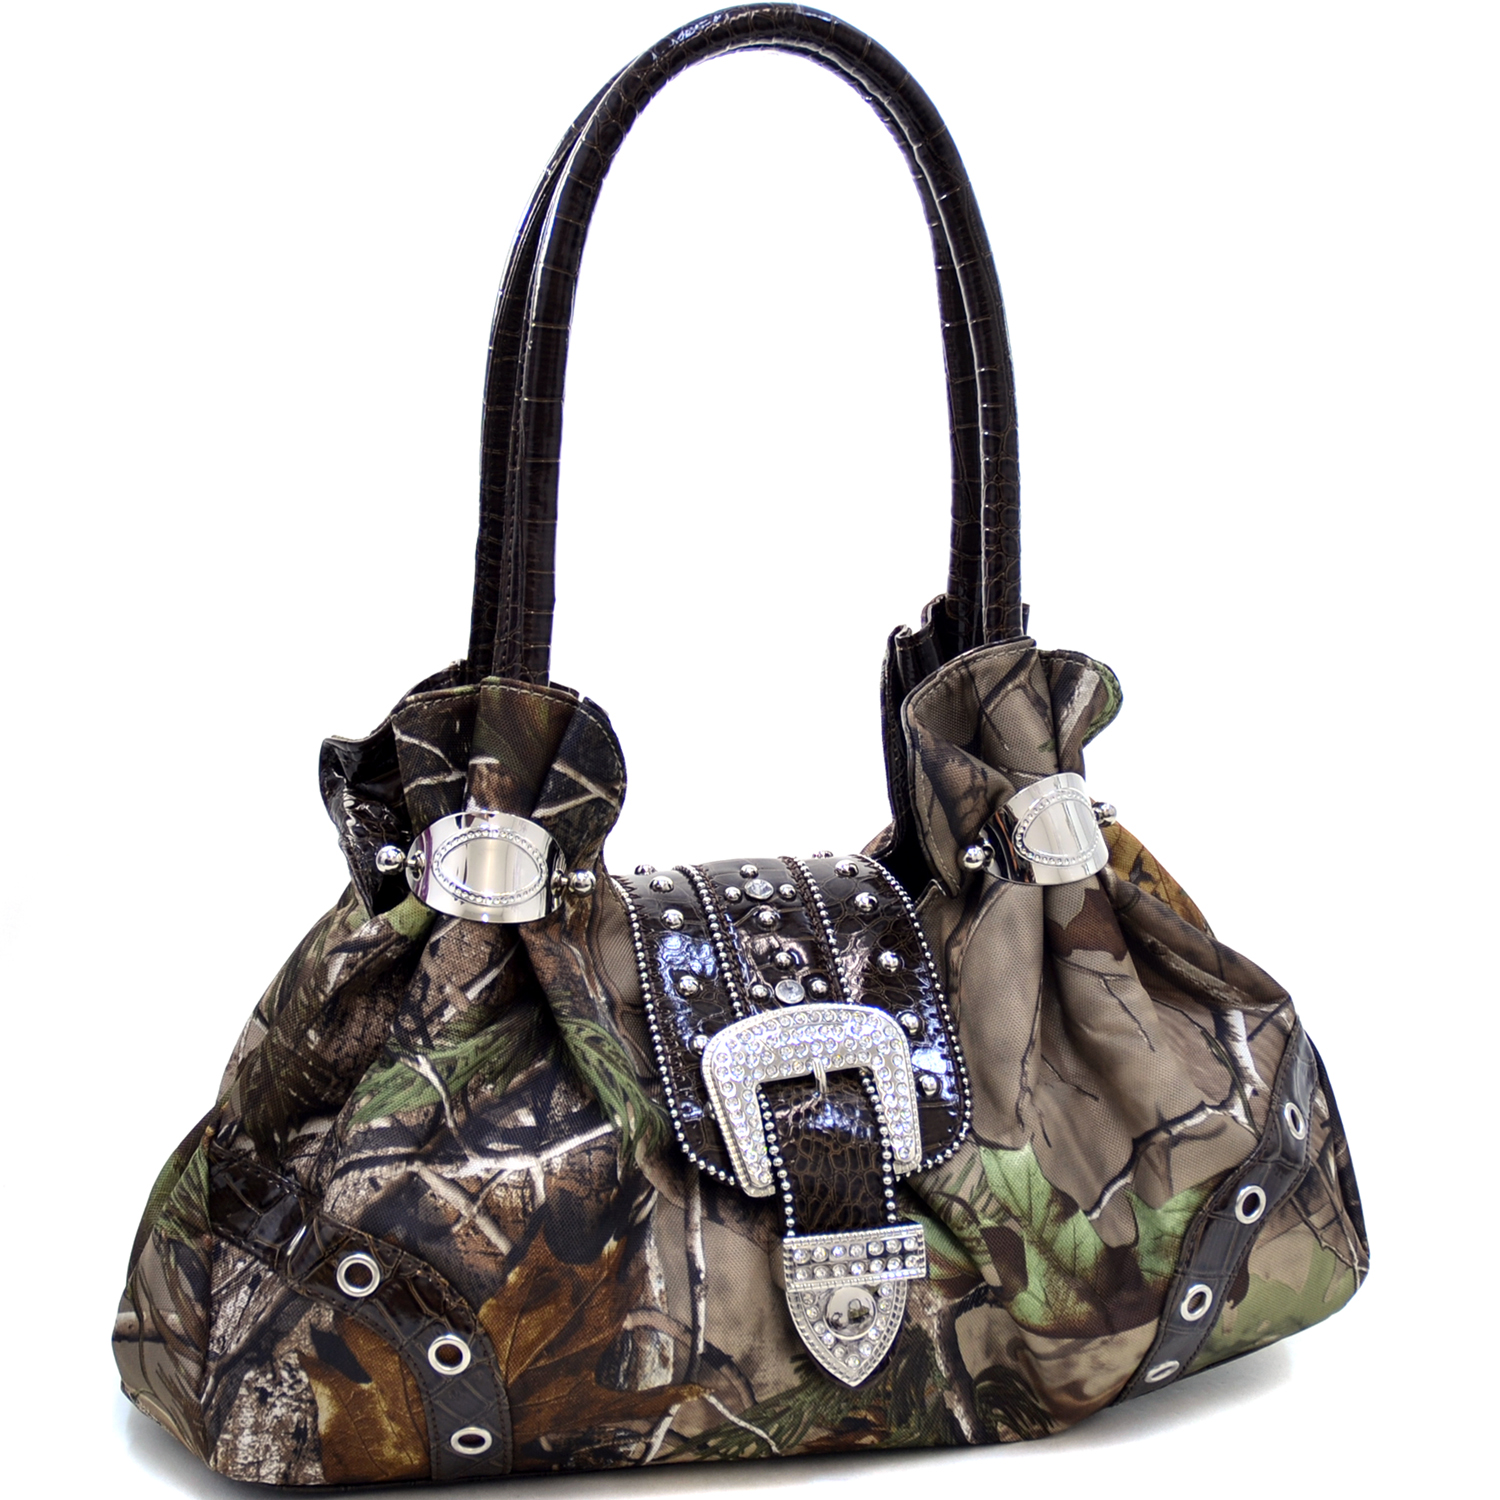 Realtree® APG Camo Rhinestone Buckle Cuffed Shoulder Bag